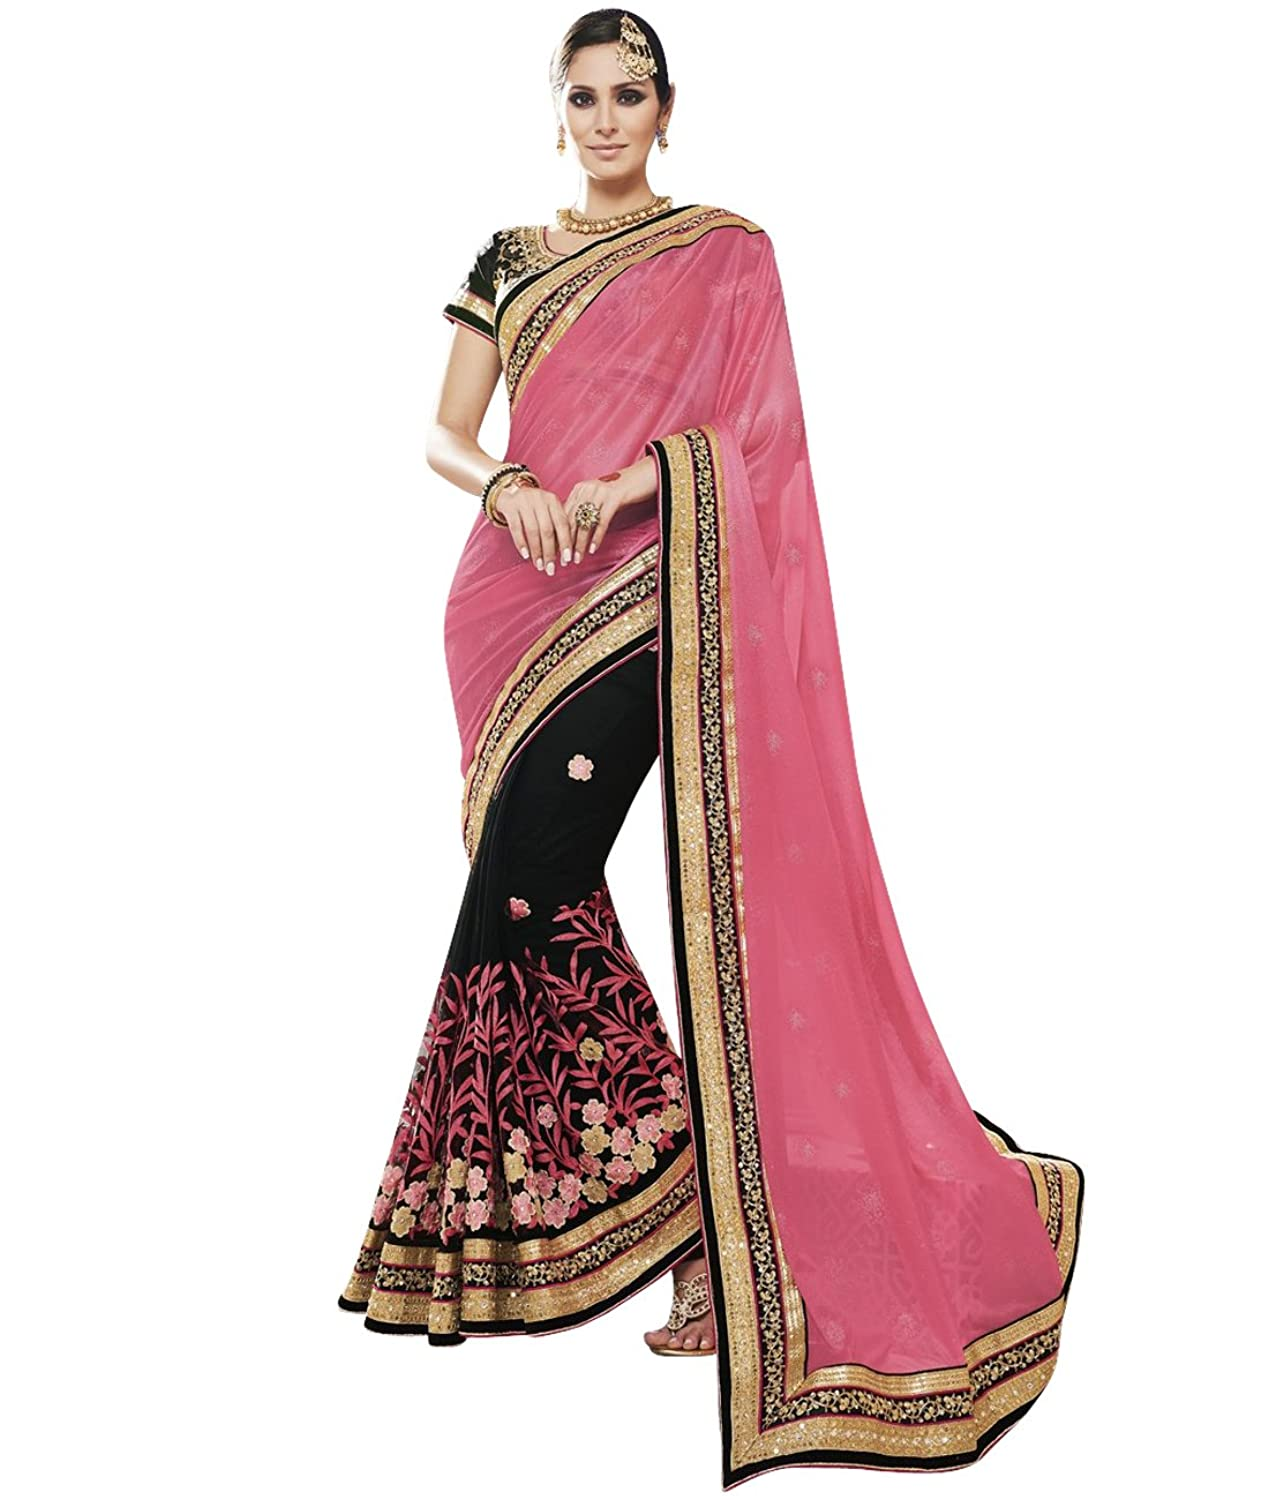 Indian Ethnic Faux Shimmer Georgette And Net Pink and Black Bridal and Wedding Saree